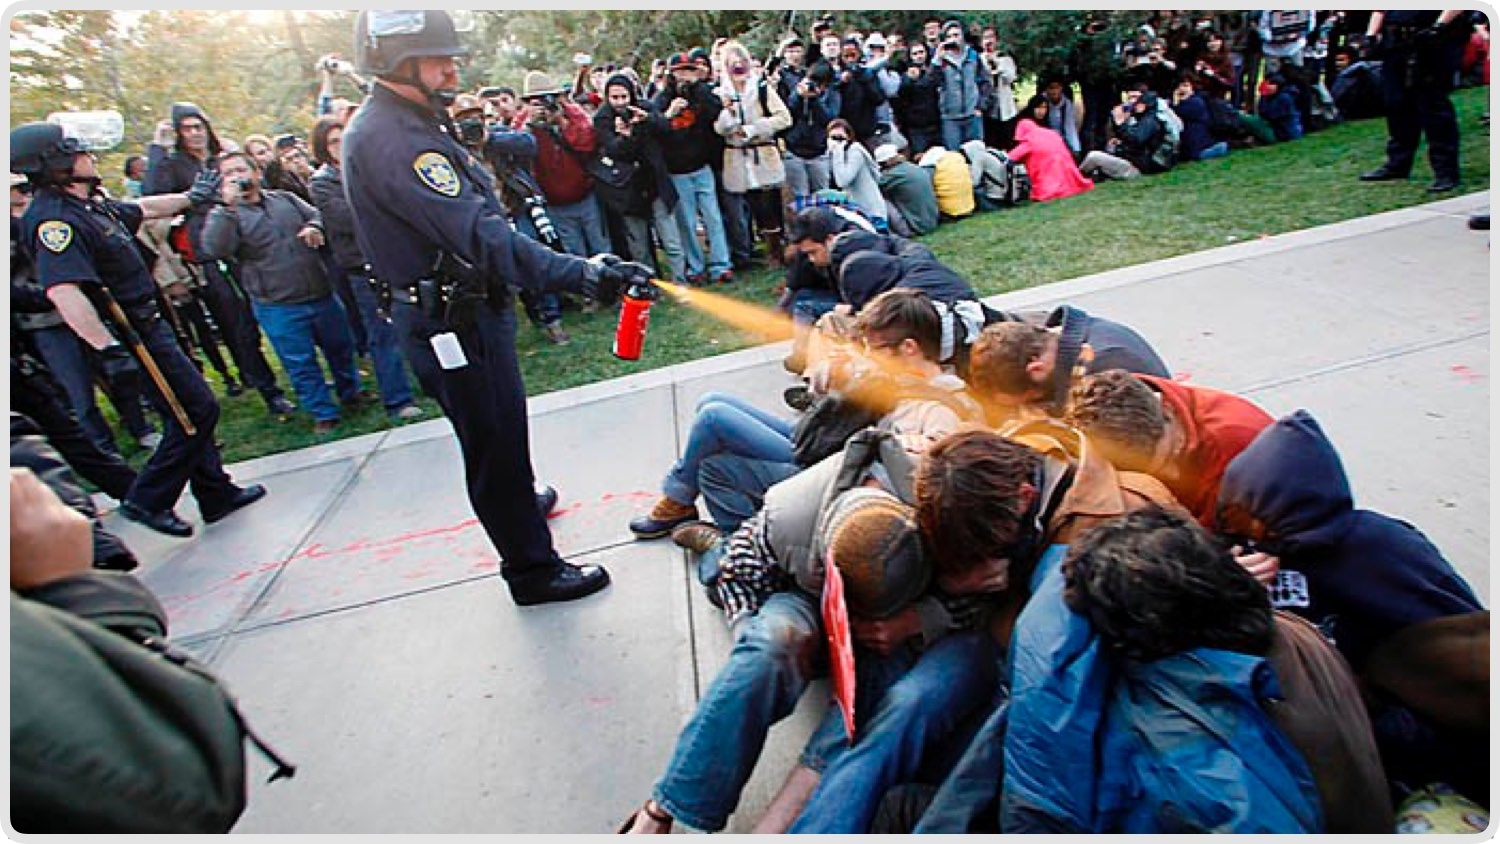 Demonstrators, protesting the shootingdeath of Michael Brown,scramble for cover as police fire tear gas.